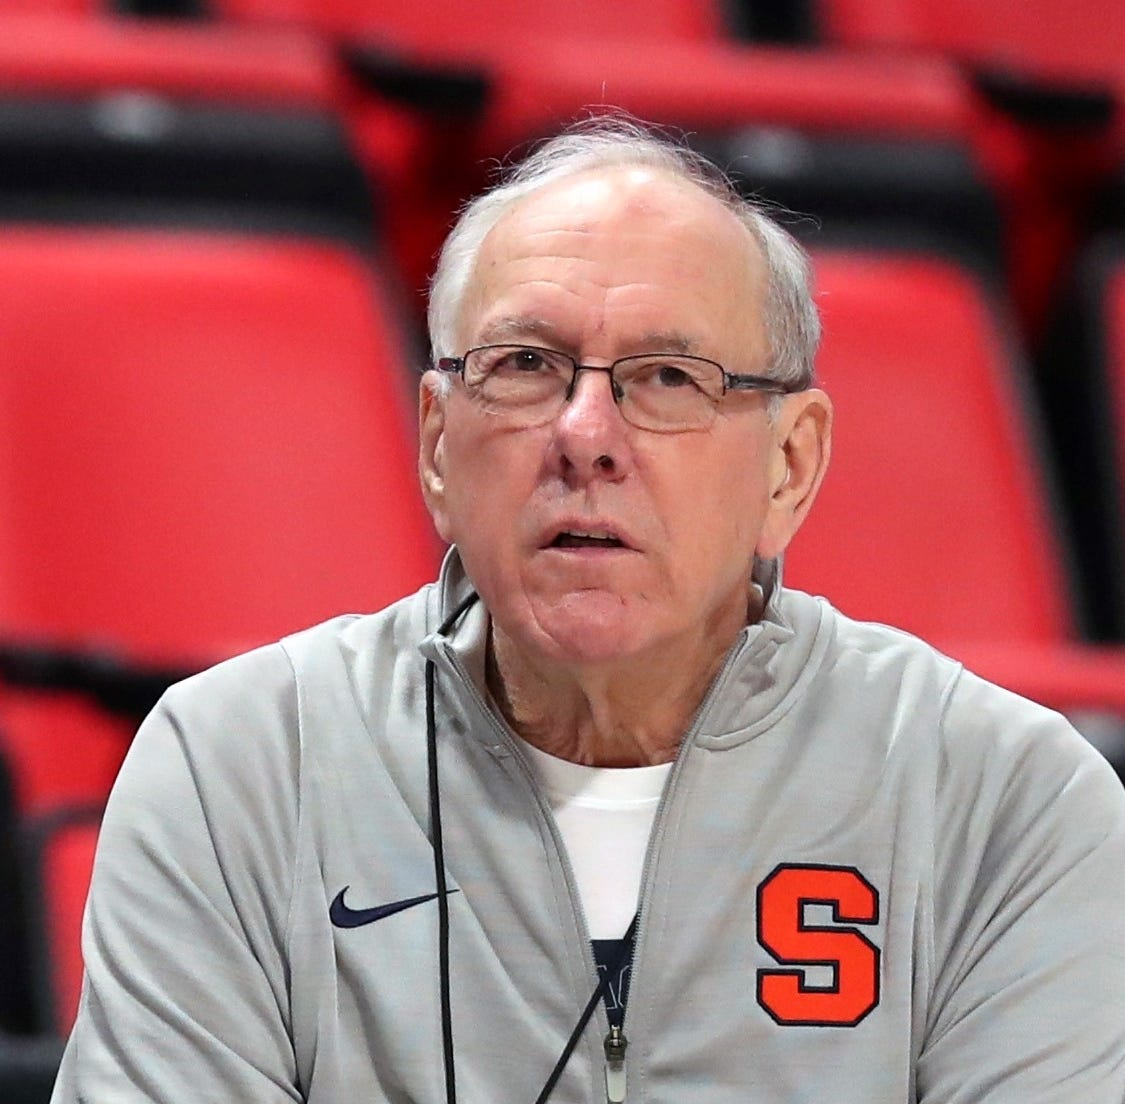 Legendary college basketball coach Jim Boeheim strikes, kills pedestrian on highway